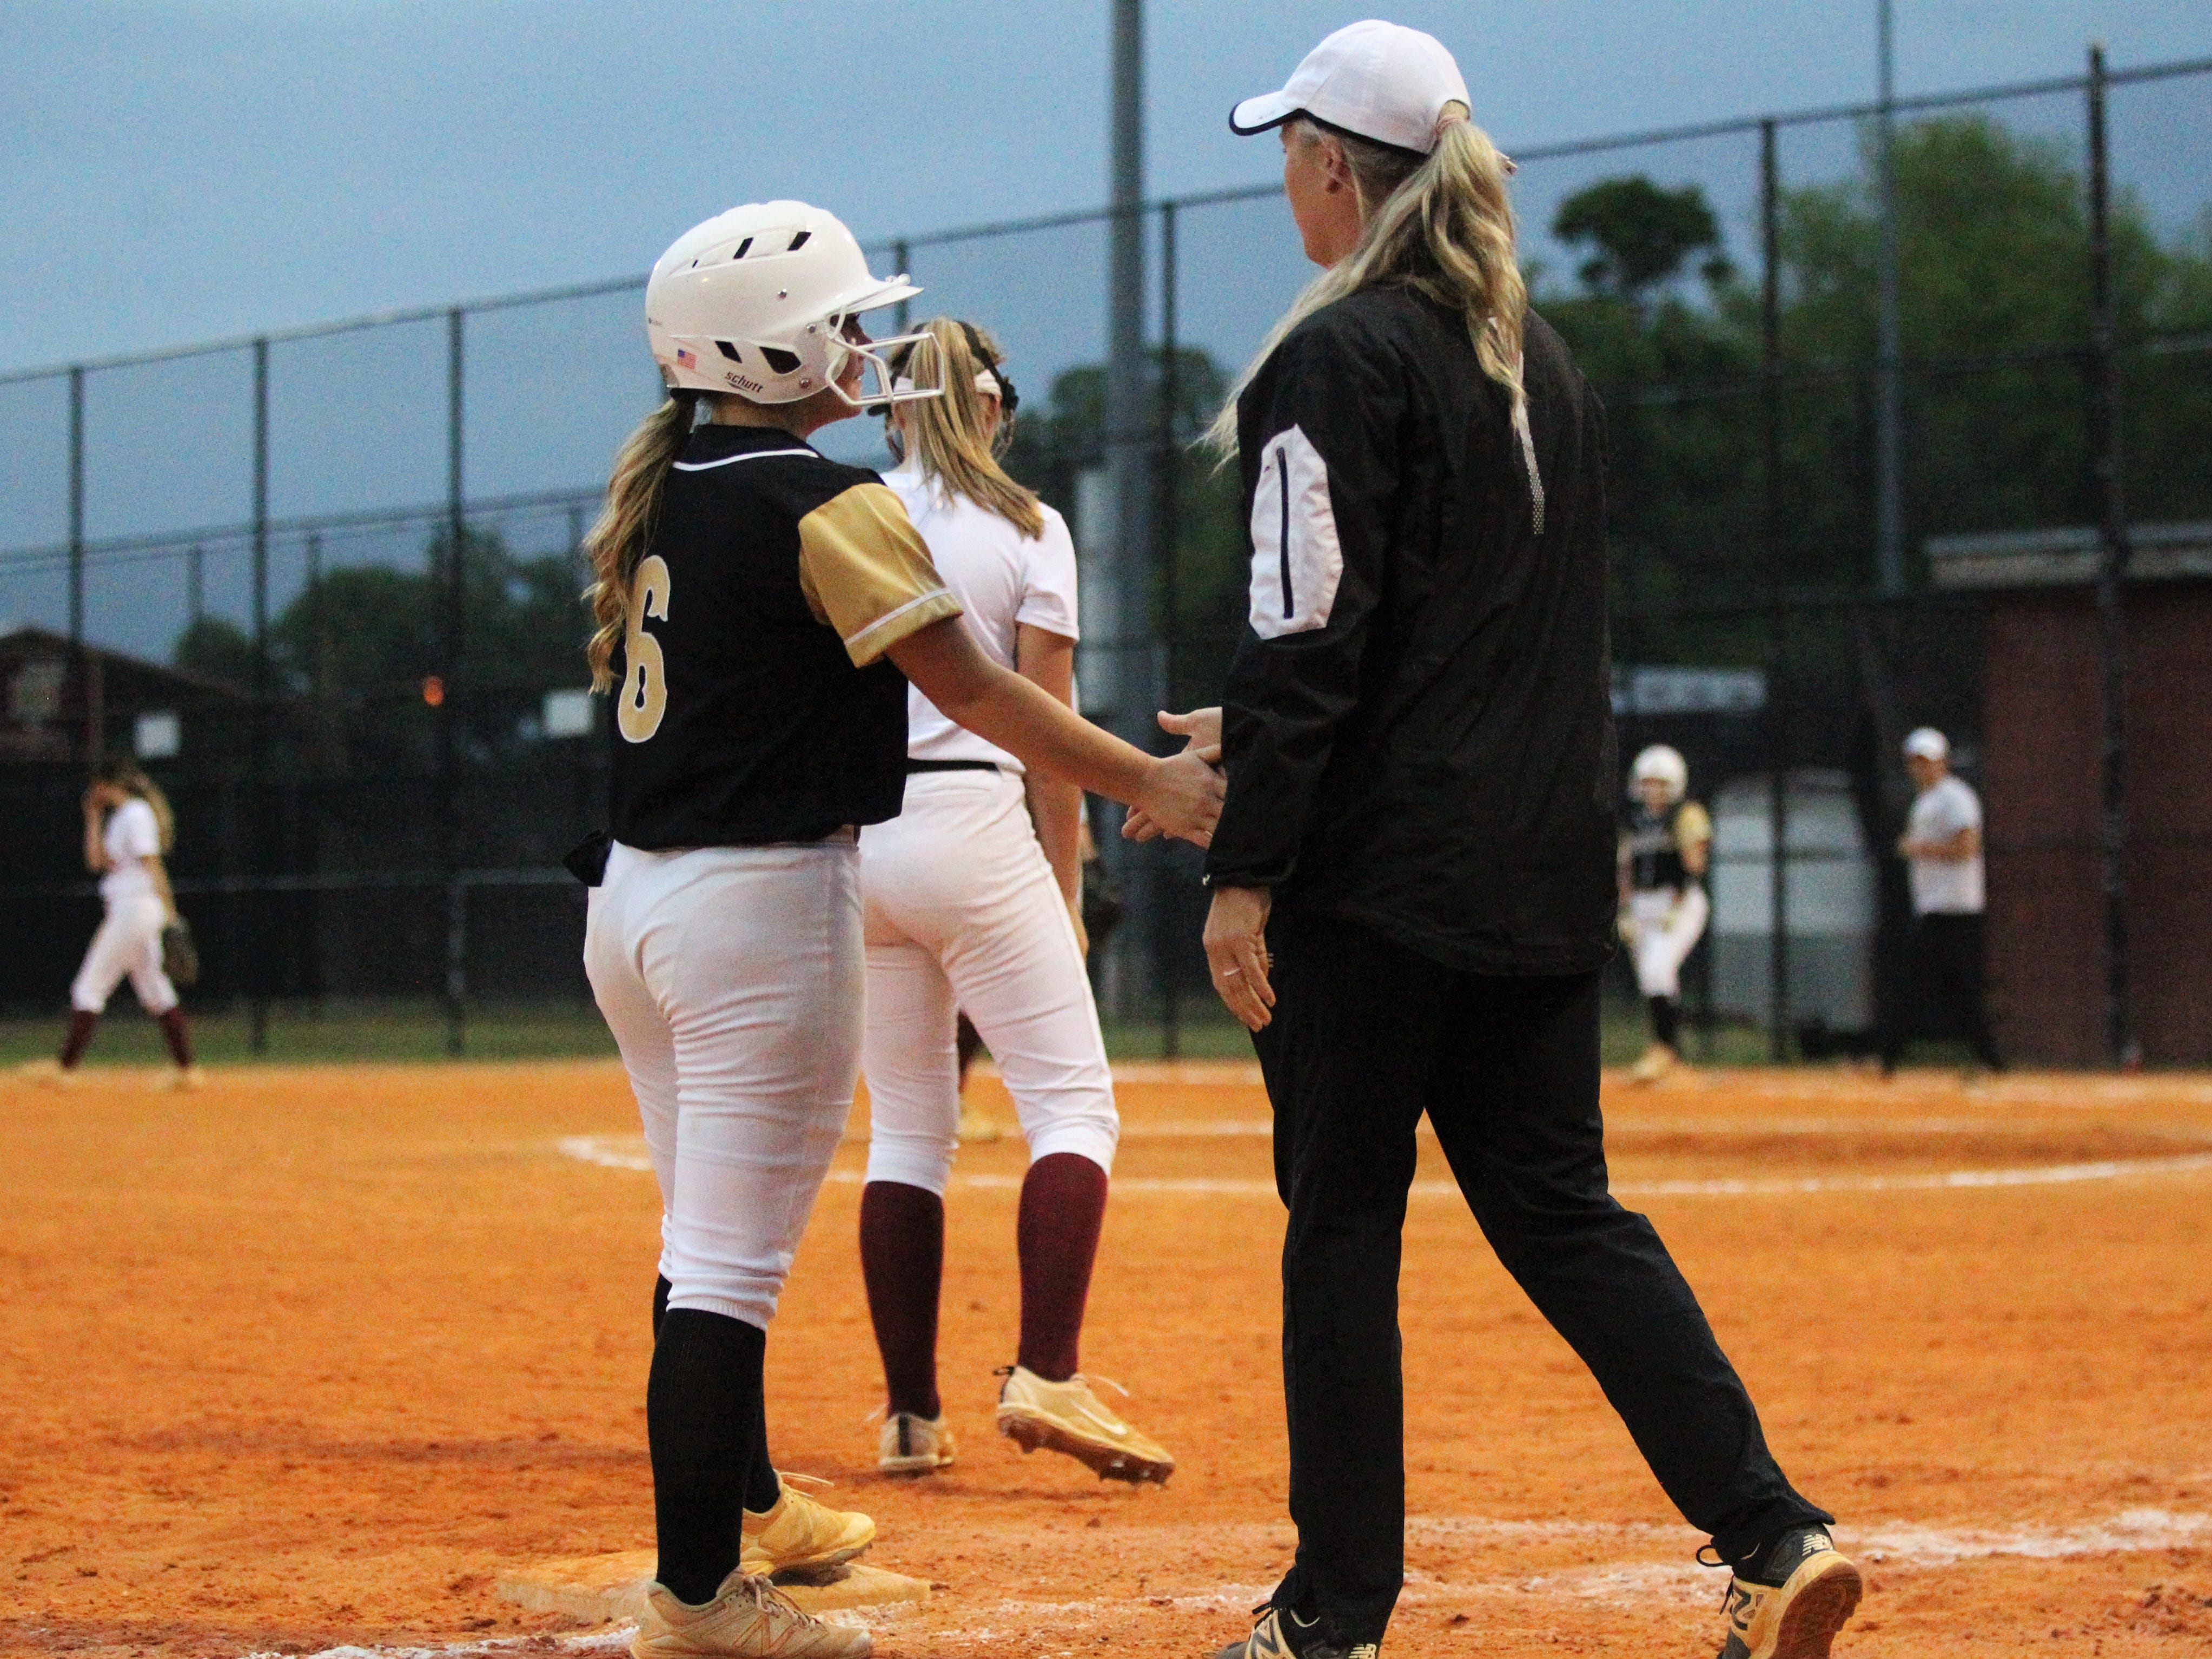 Lincoln softball coach Terese Waltman slaps hands with senior Shelby Sloan as Lincoln's softball team beat Florida High 7-3 on Thursday, April 4, 2019.